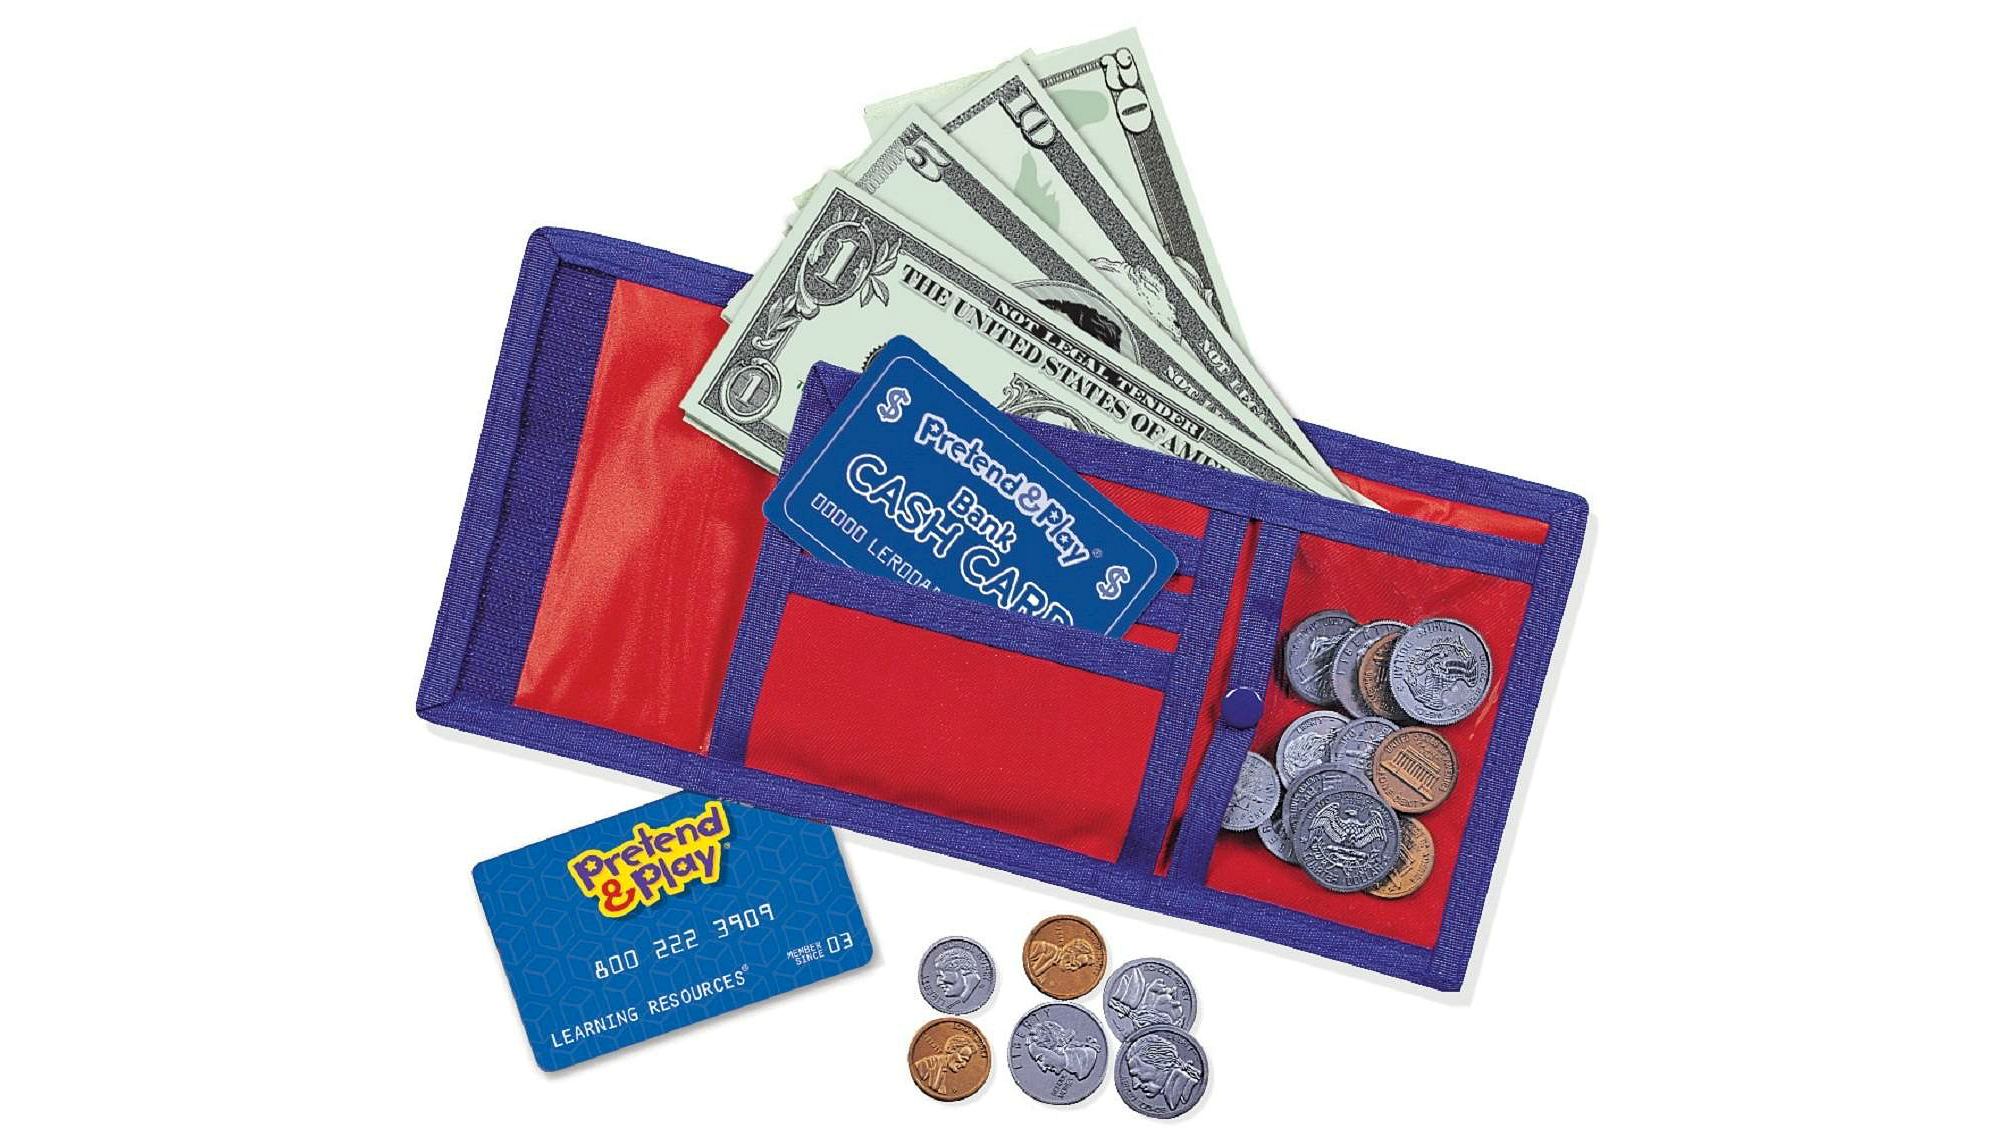 Pretend & Play cash and carry wallet with fake money